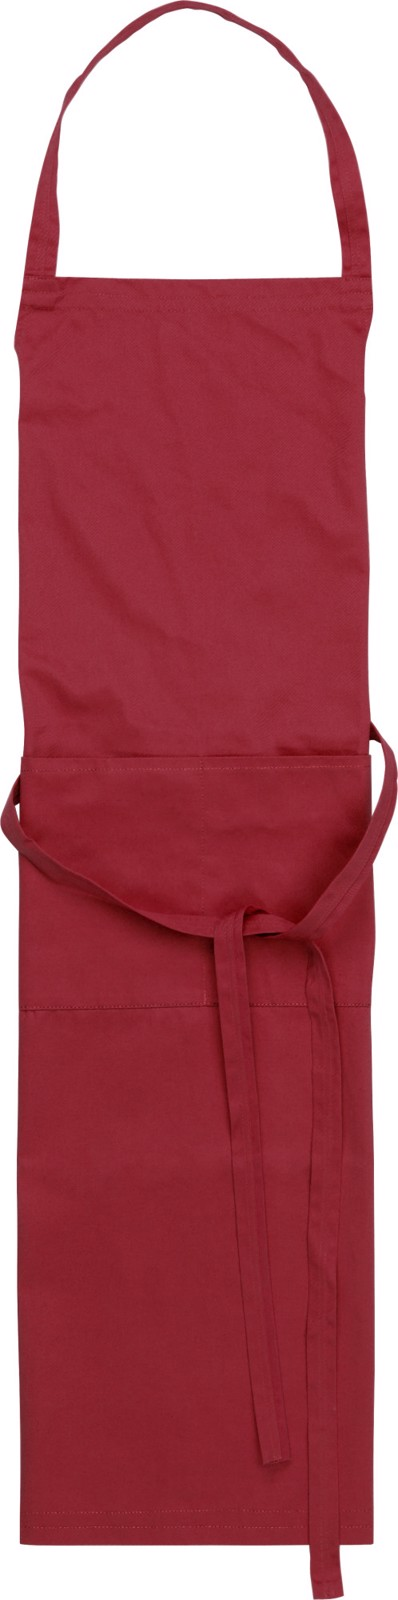 Cotton and polyester (240 gr/m²) apron - Burgundy